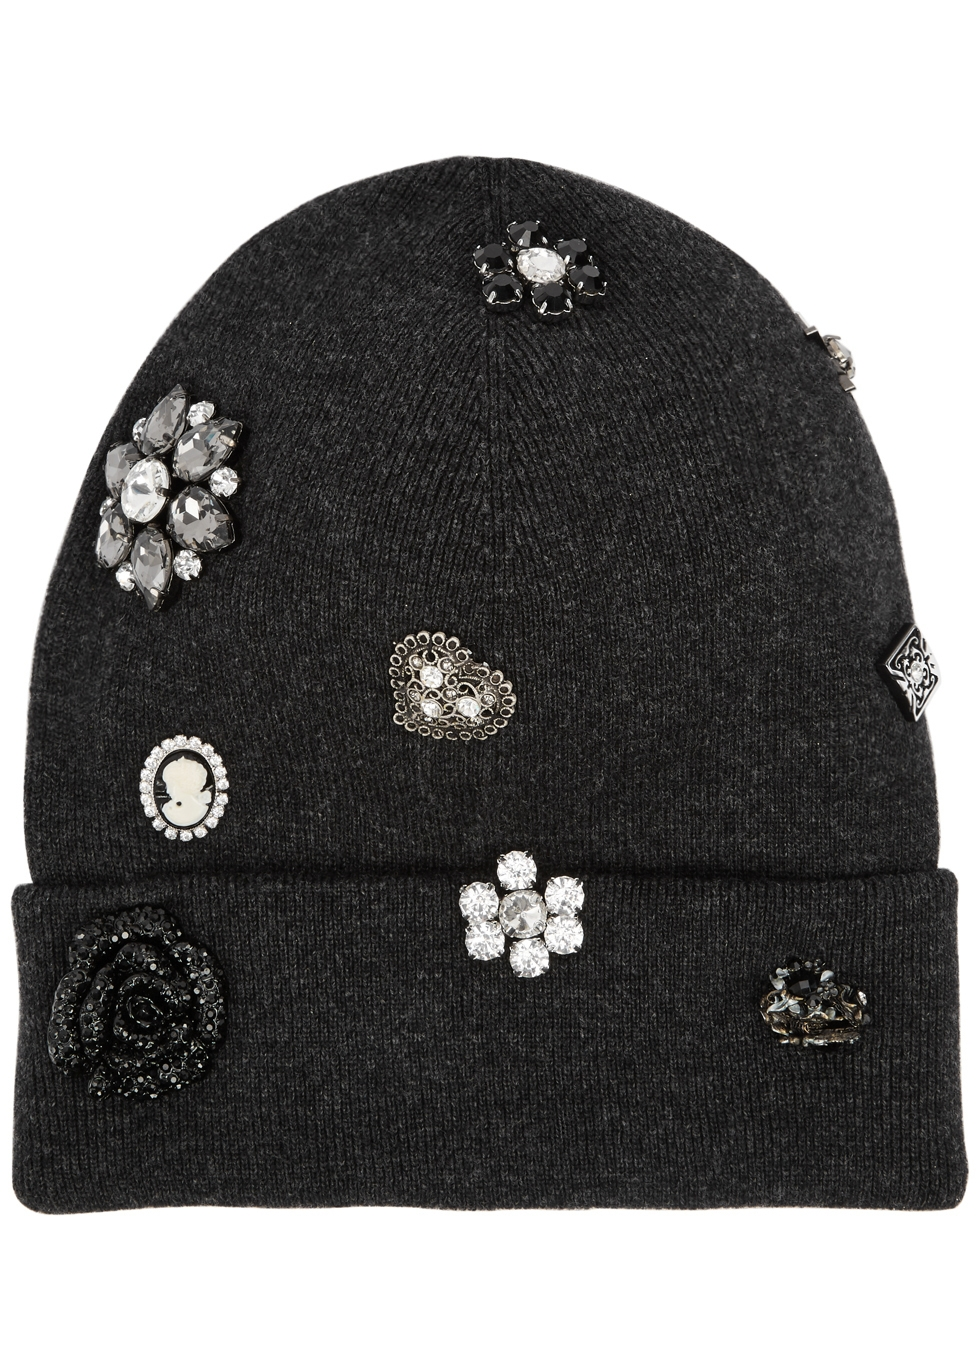 THATSAHAT ! Grey Embellished Wool-Blend Beanie in Dark Grey